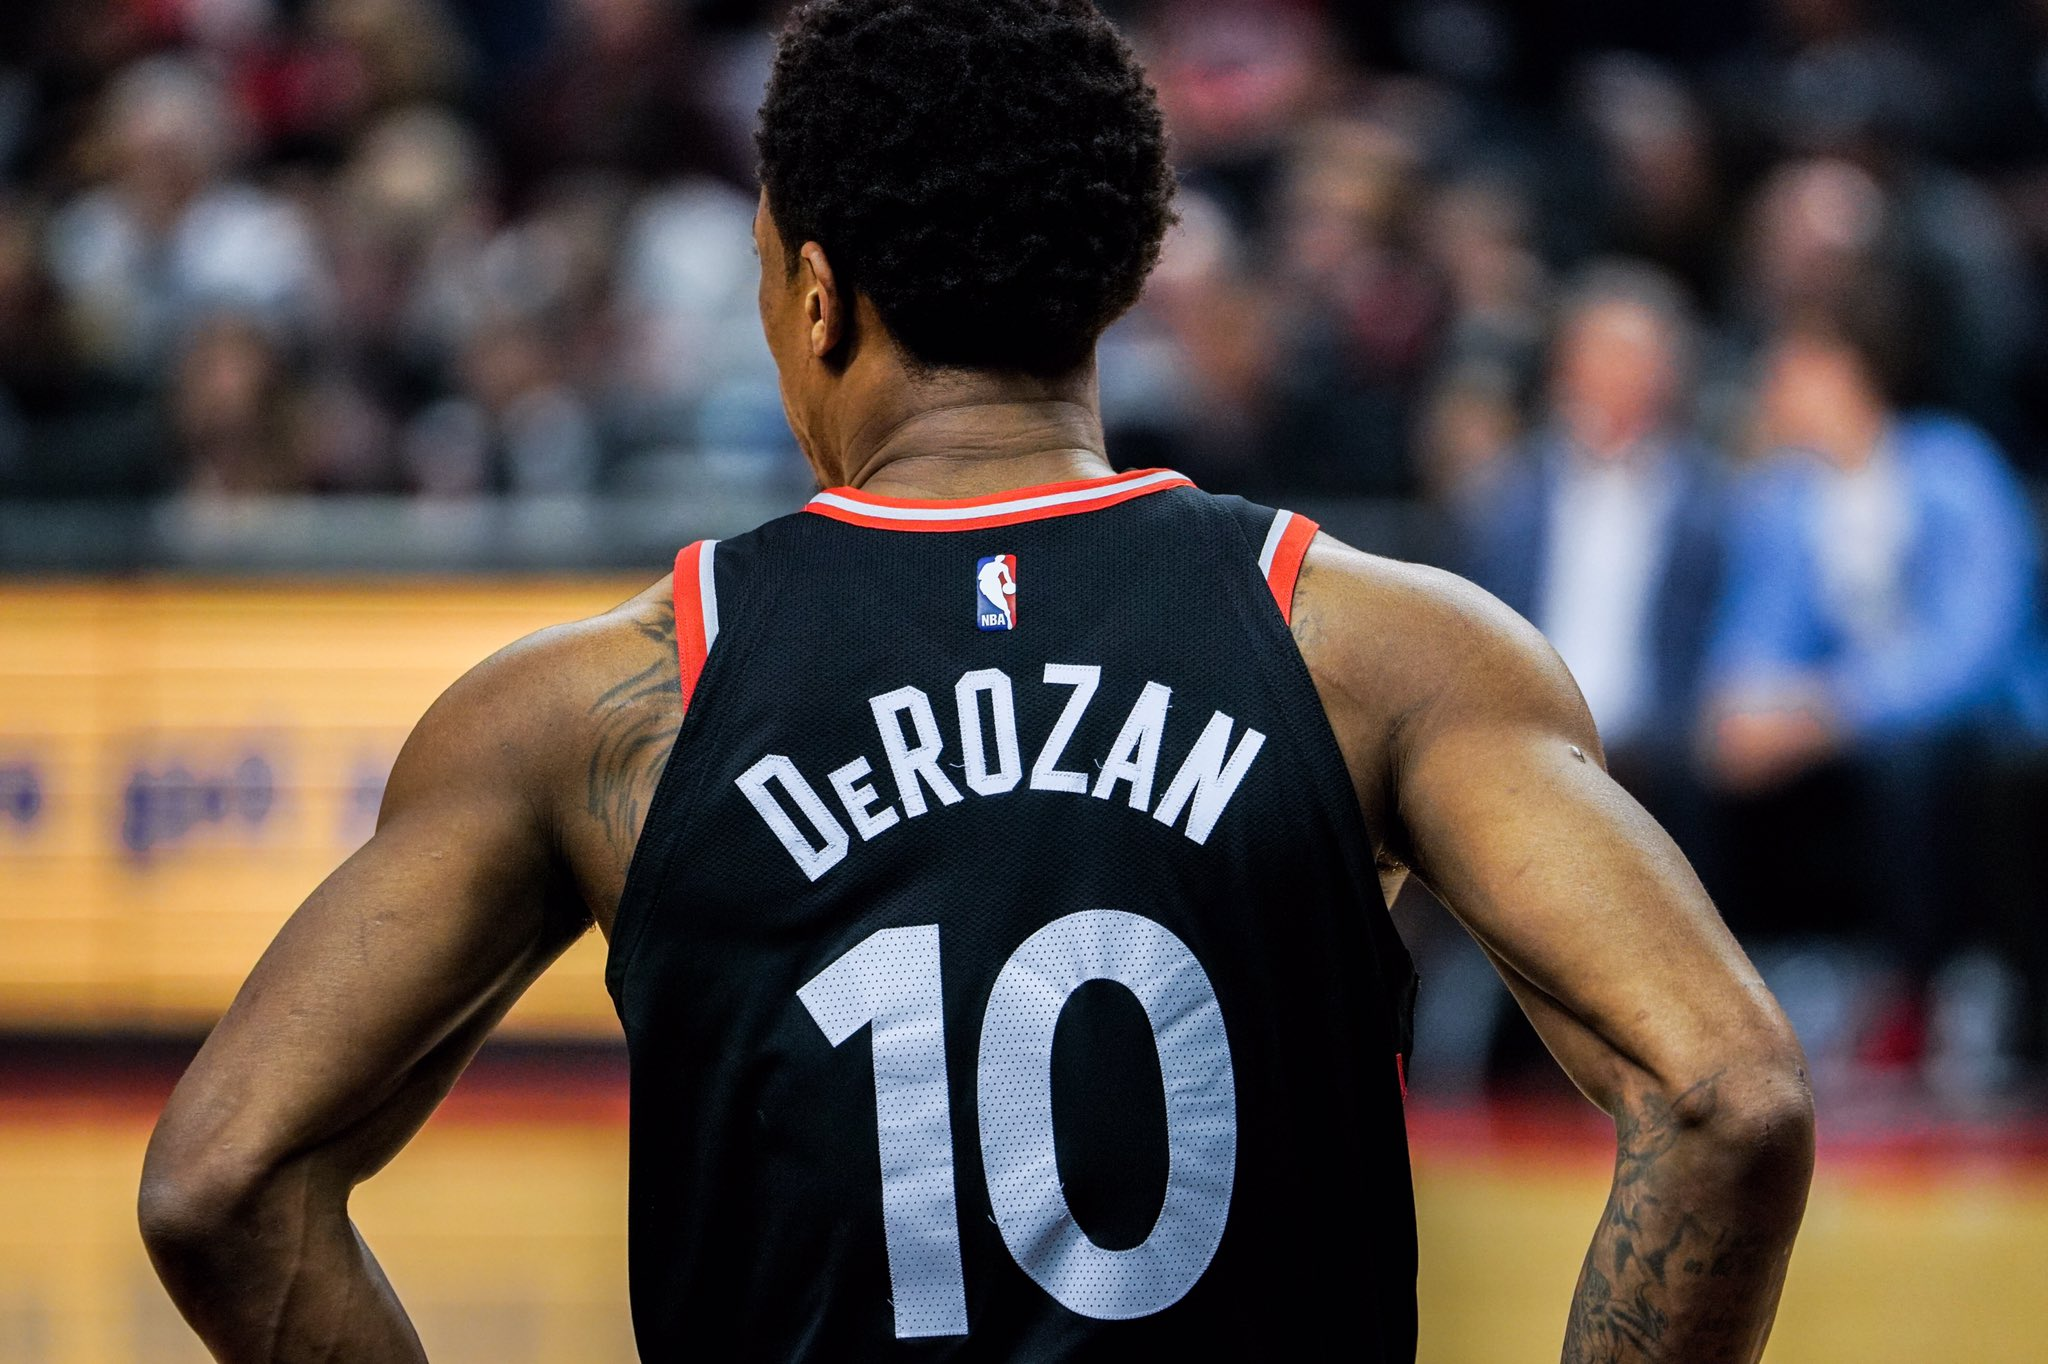 'I am Toronto' - @DeMar_DeRozan   1 Retweet = 1 #NBAVote https://t.co/gNZSPtADrv